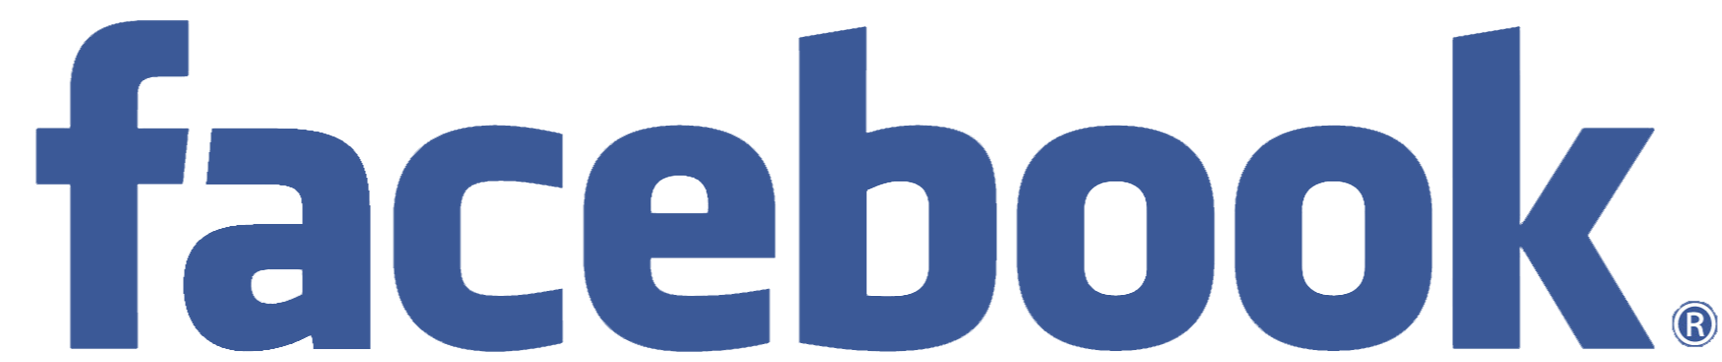 facebook logos PNG19749 - Best 3dsMax Training in Chandigarh